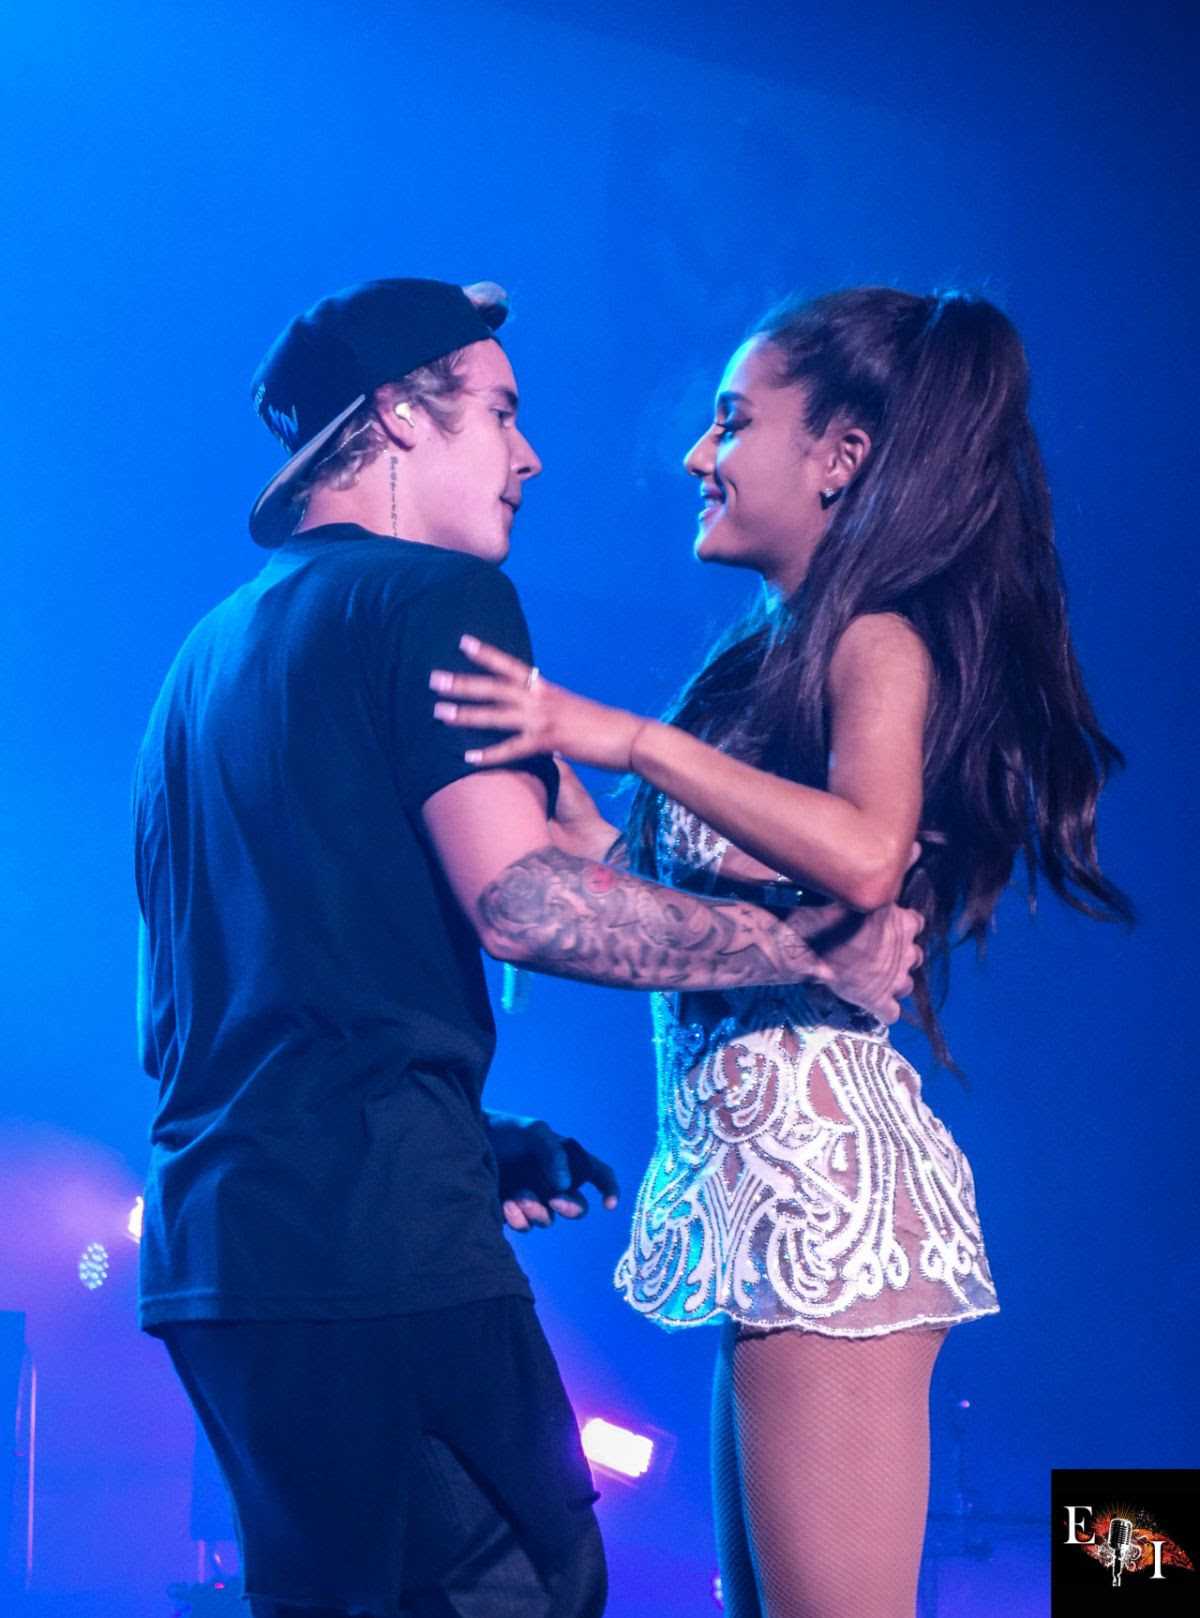 ARIANA GRANDE and Justin Bieber Performs at Honeymoon Tour in Miami